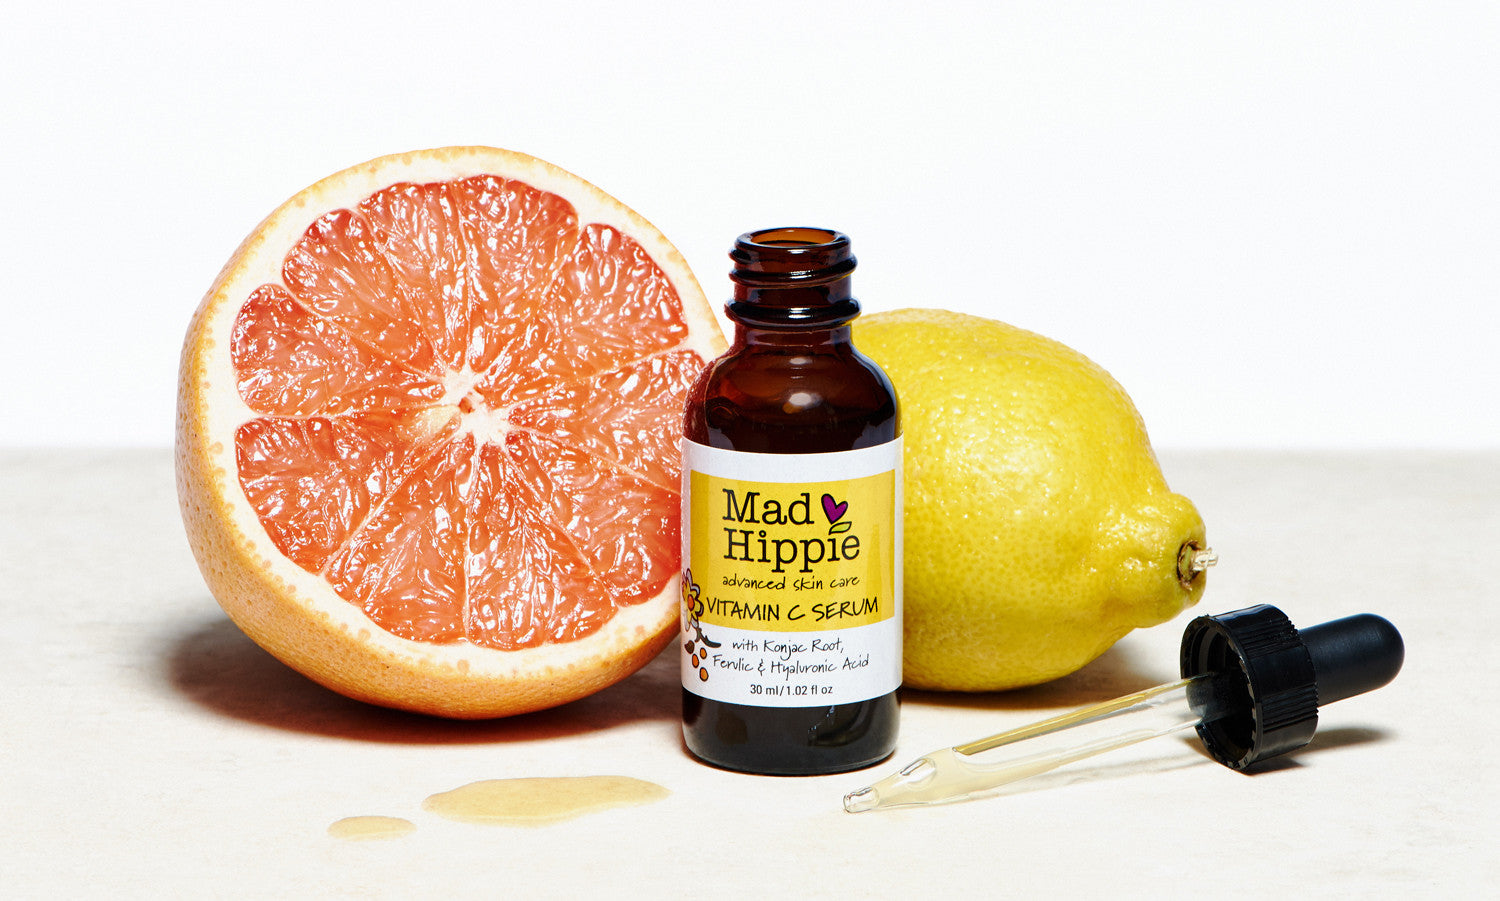 Mad Hippie Vitamin C Serum Packed Vitamins